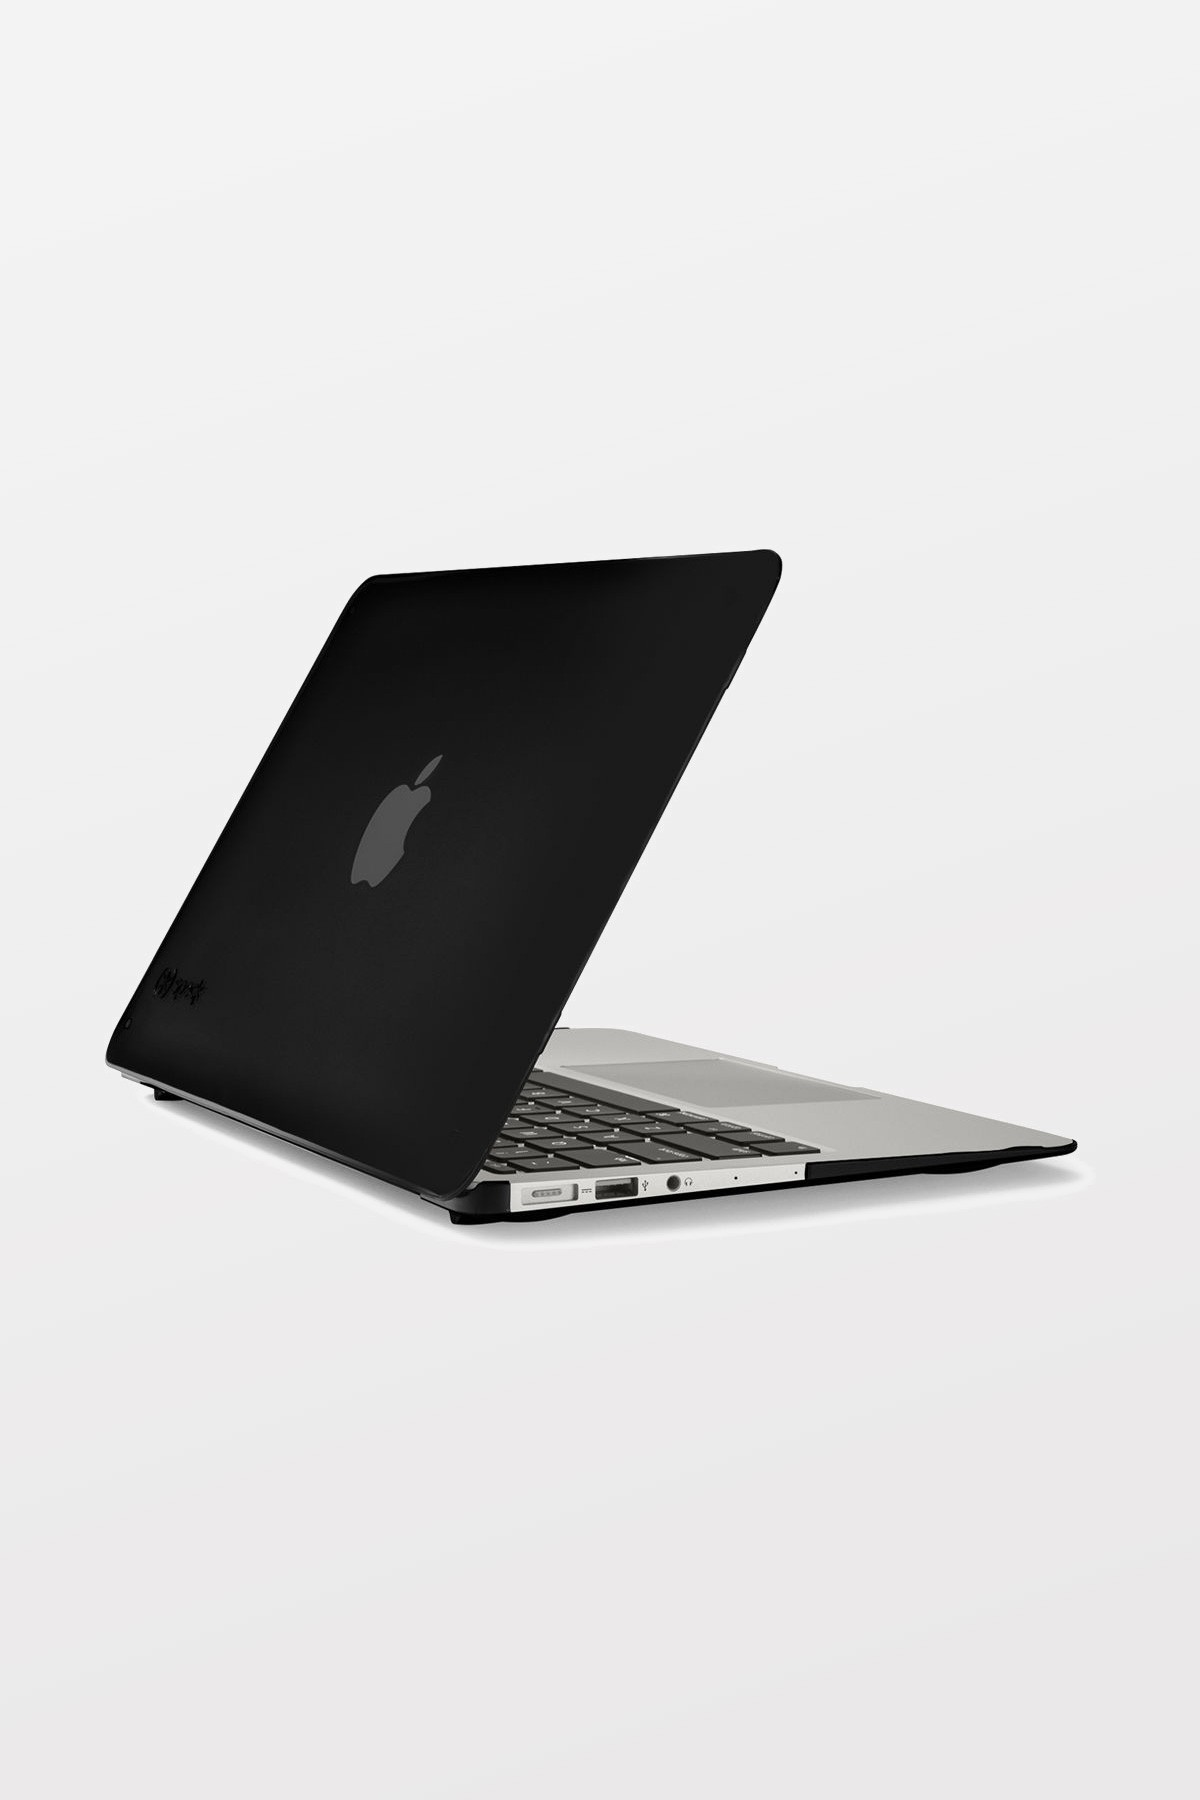 Speck Macbook Air 13-inch SeeThru Satin Black